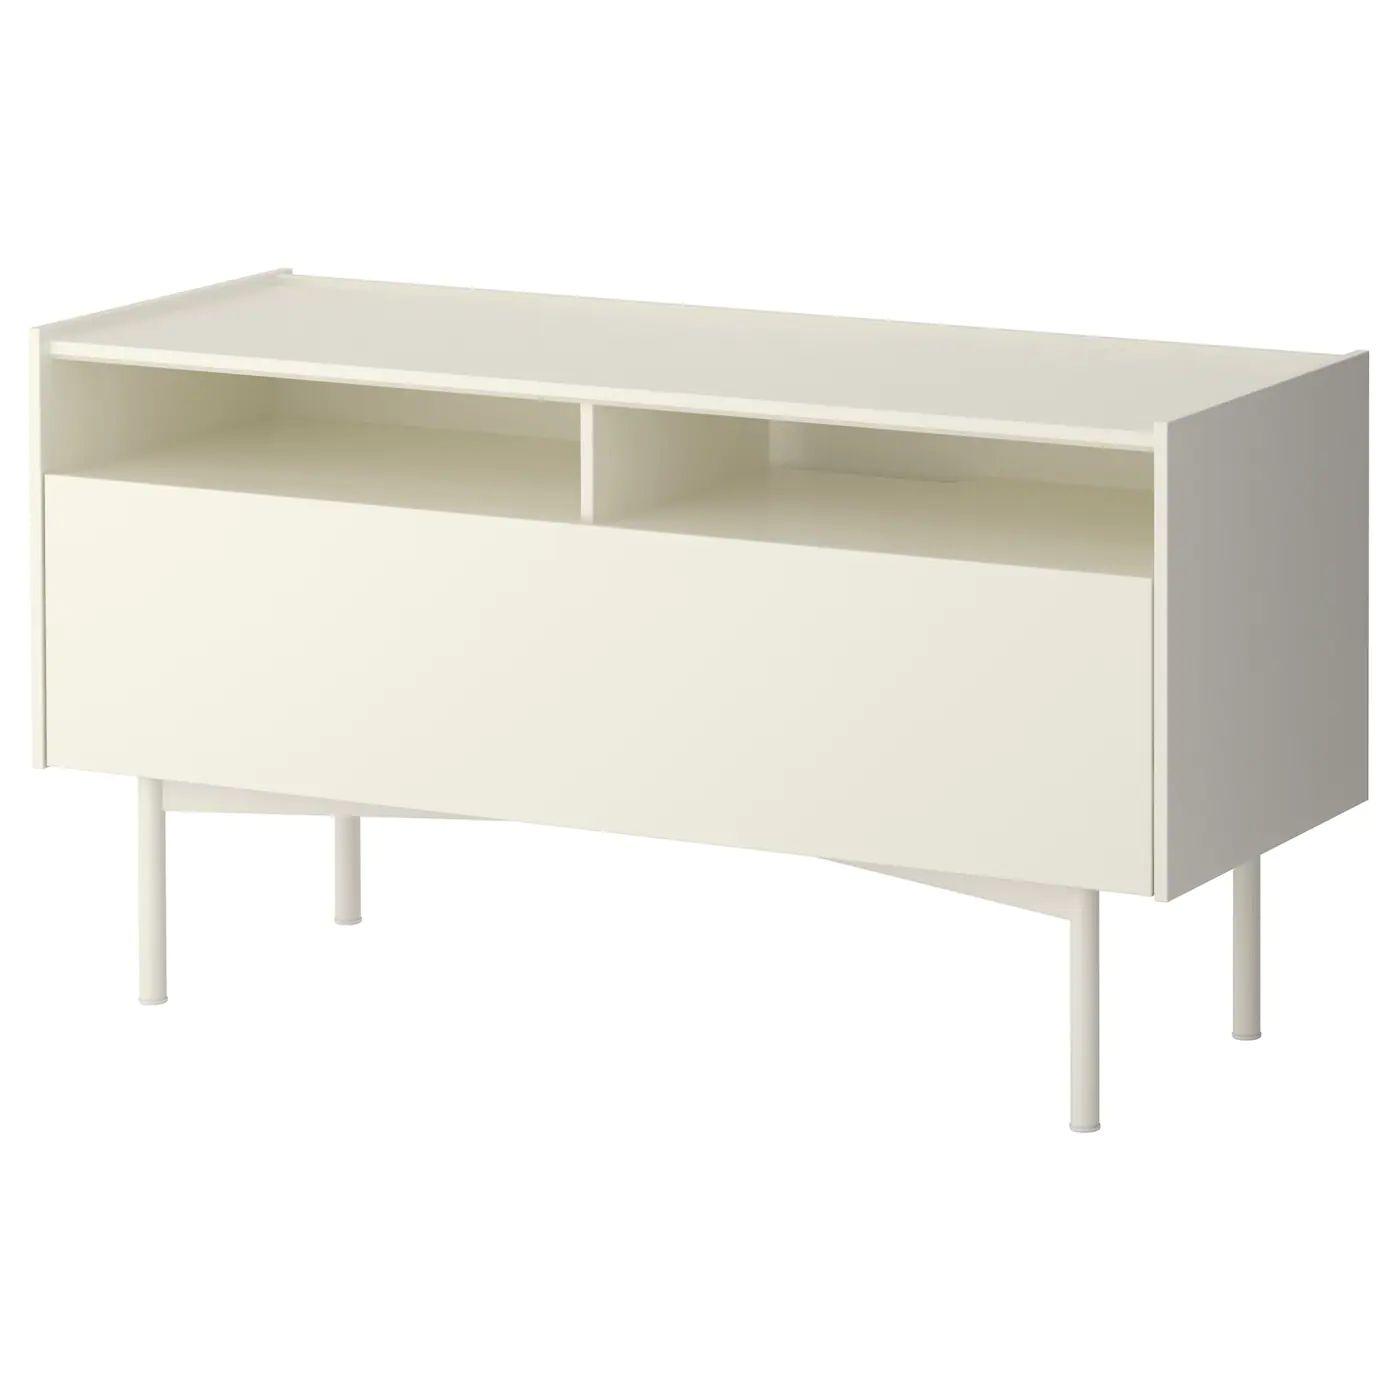 Ikea rams tra tv bench powder coated fibreboard makes the surface durable and scratch resistant